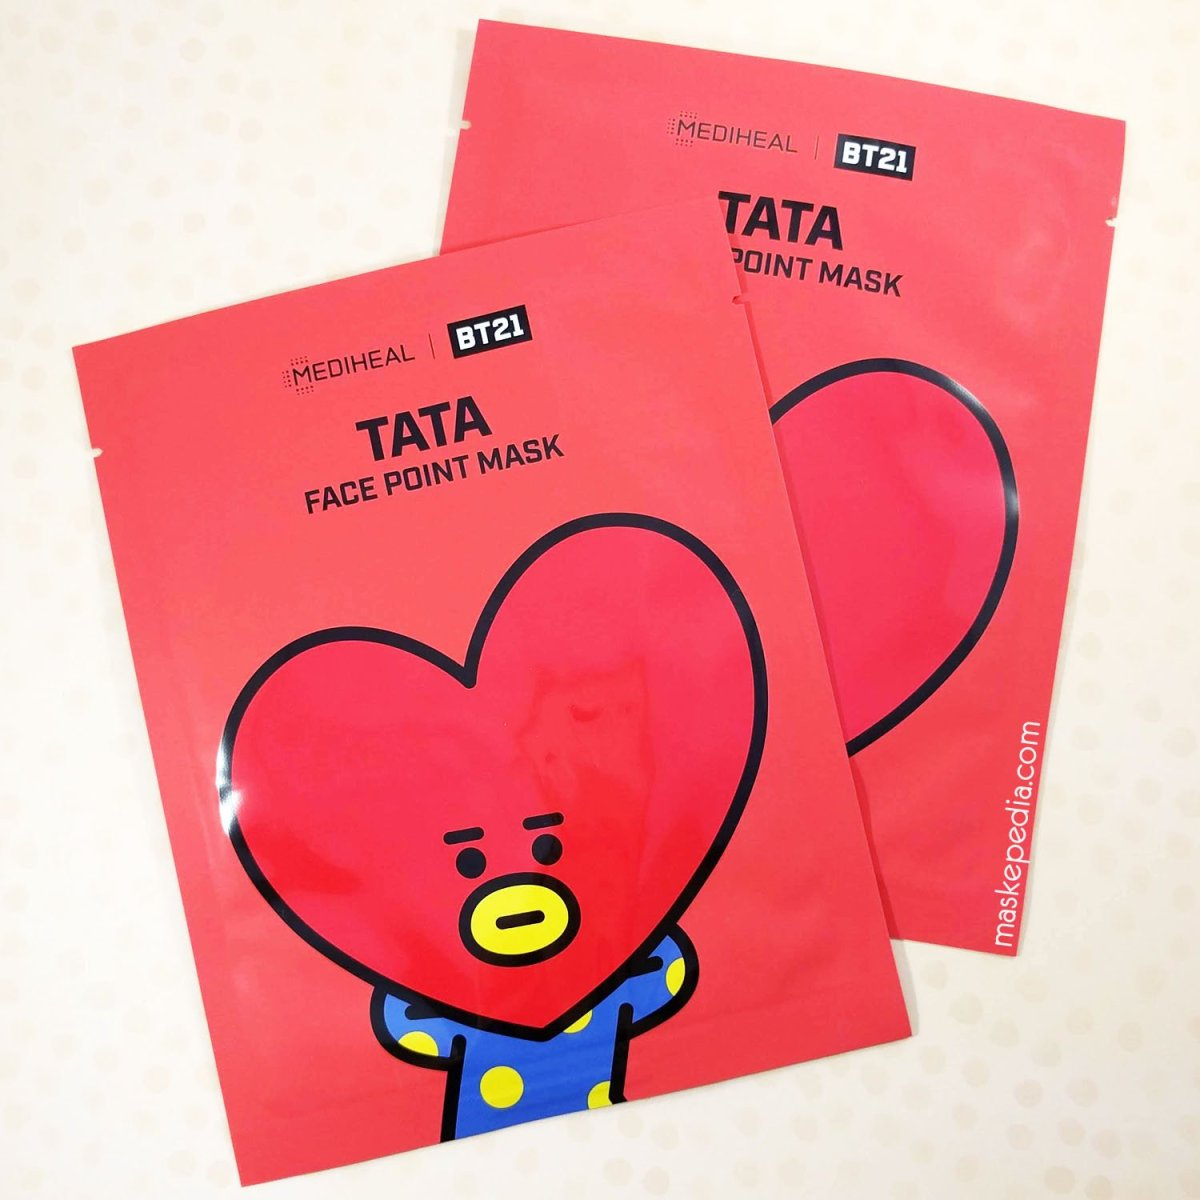 Review: Mediheal BT21 Face Point Mask - Tata ★★★.☆